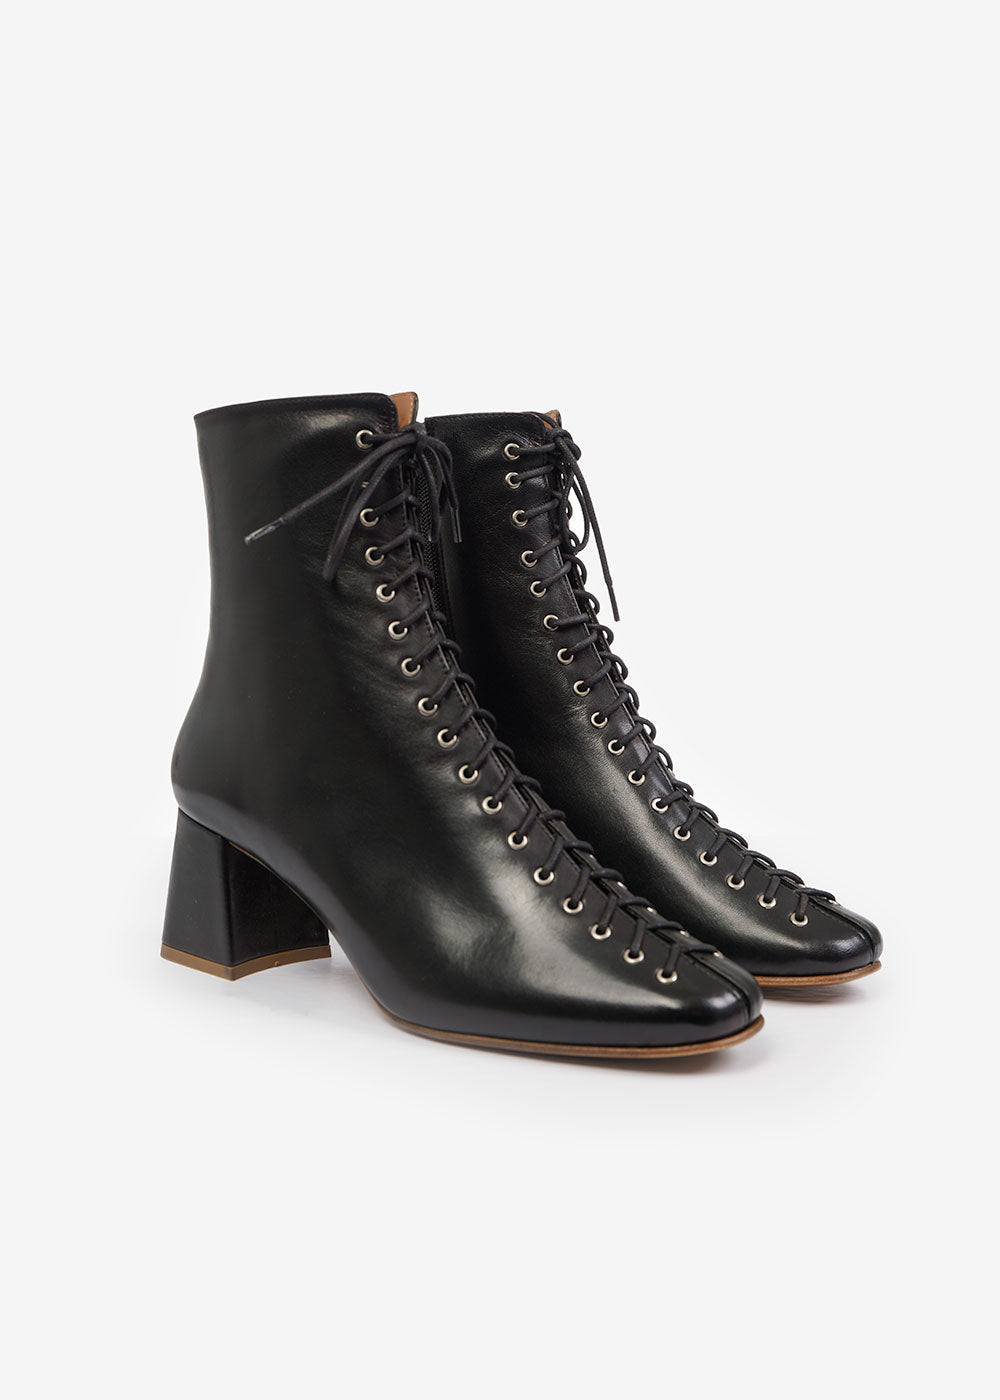 BY FAR Black Becca Boots — Shop sustainable fashion and slow fashion at New Classics Studios